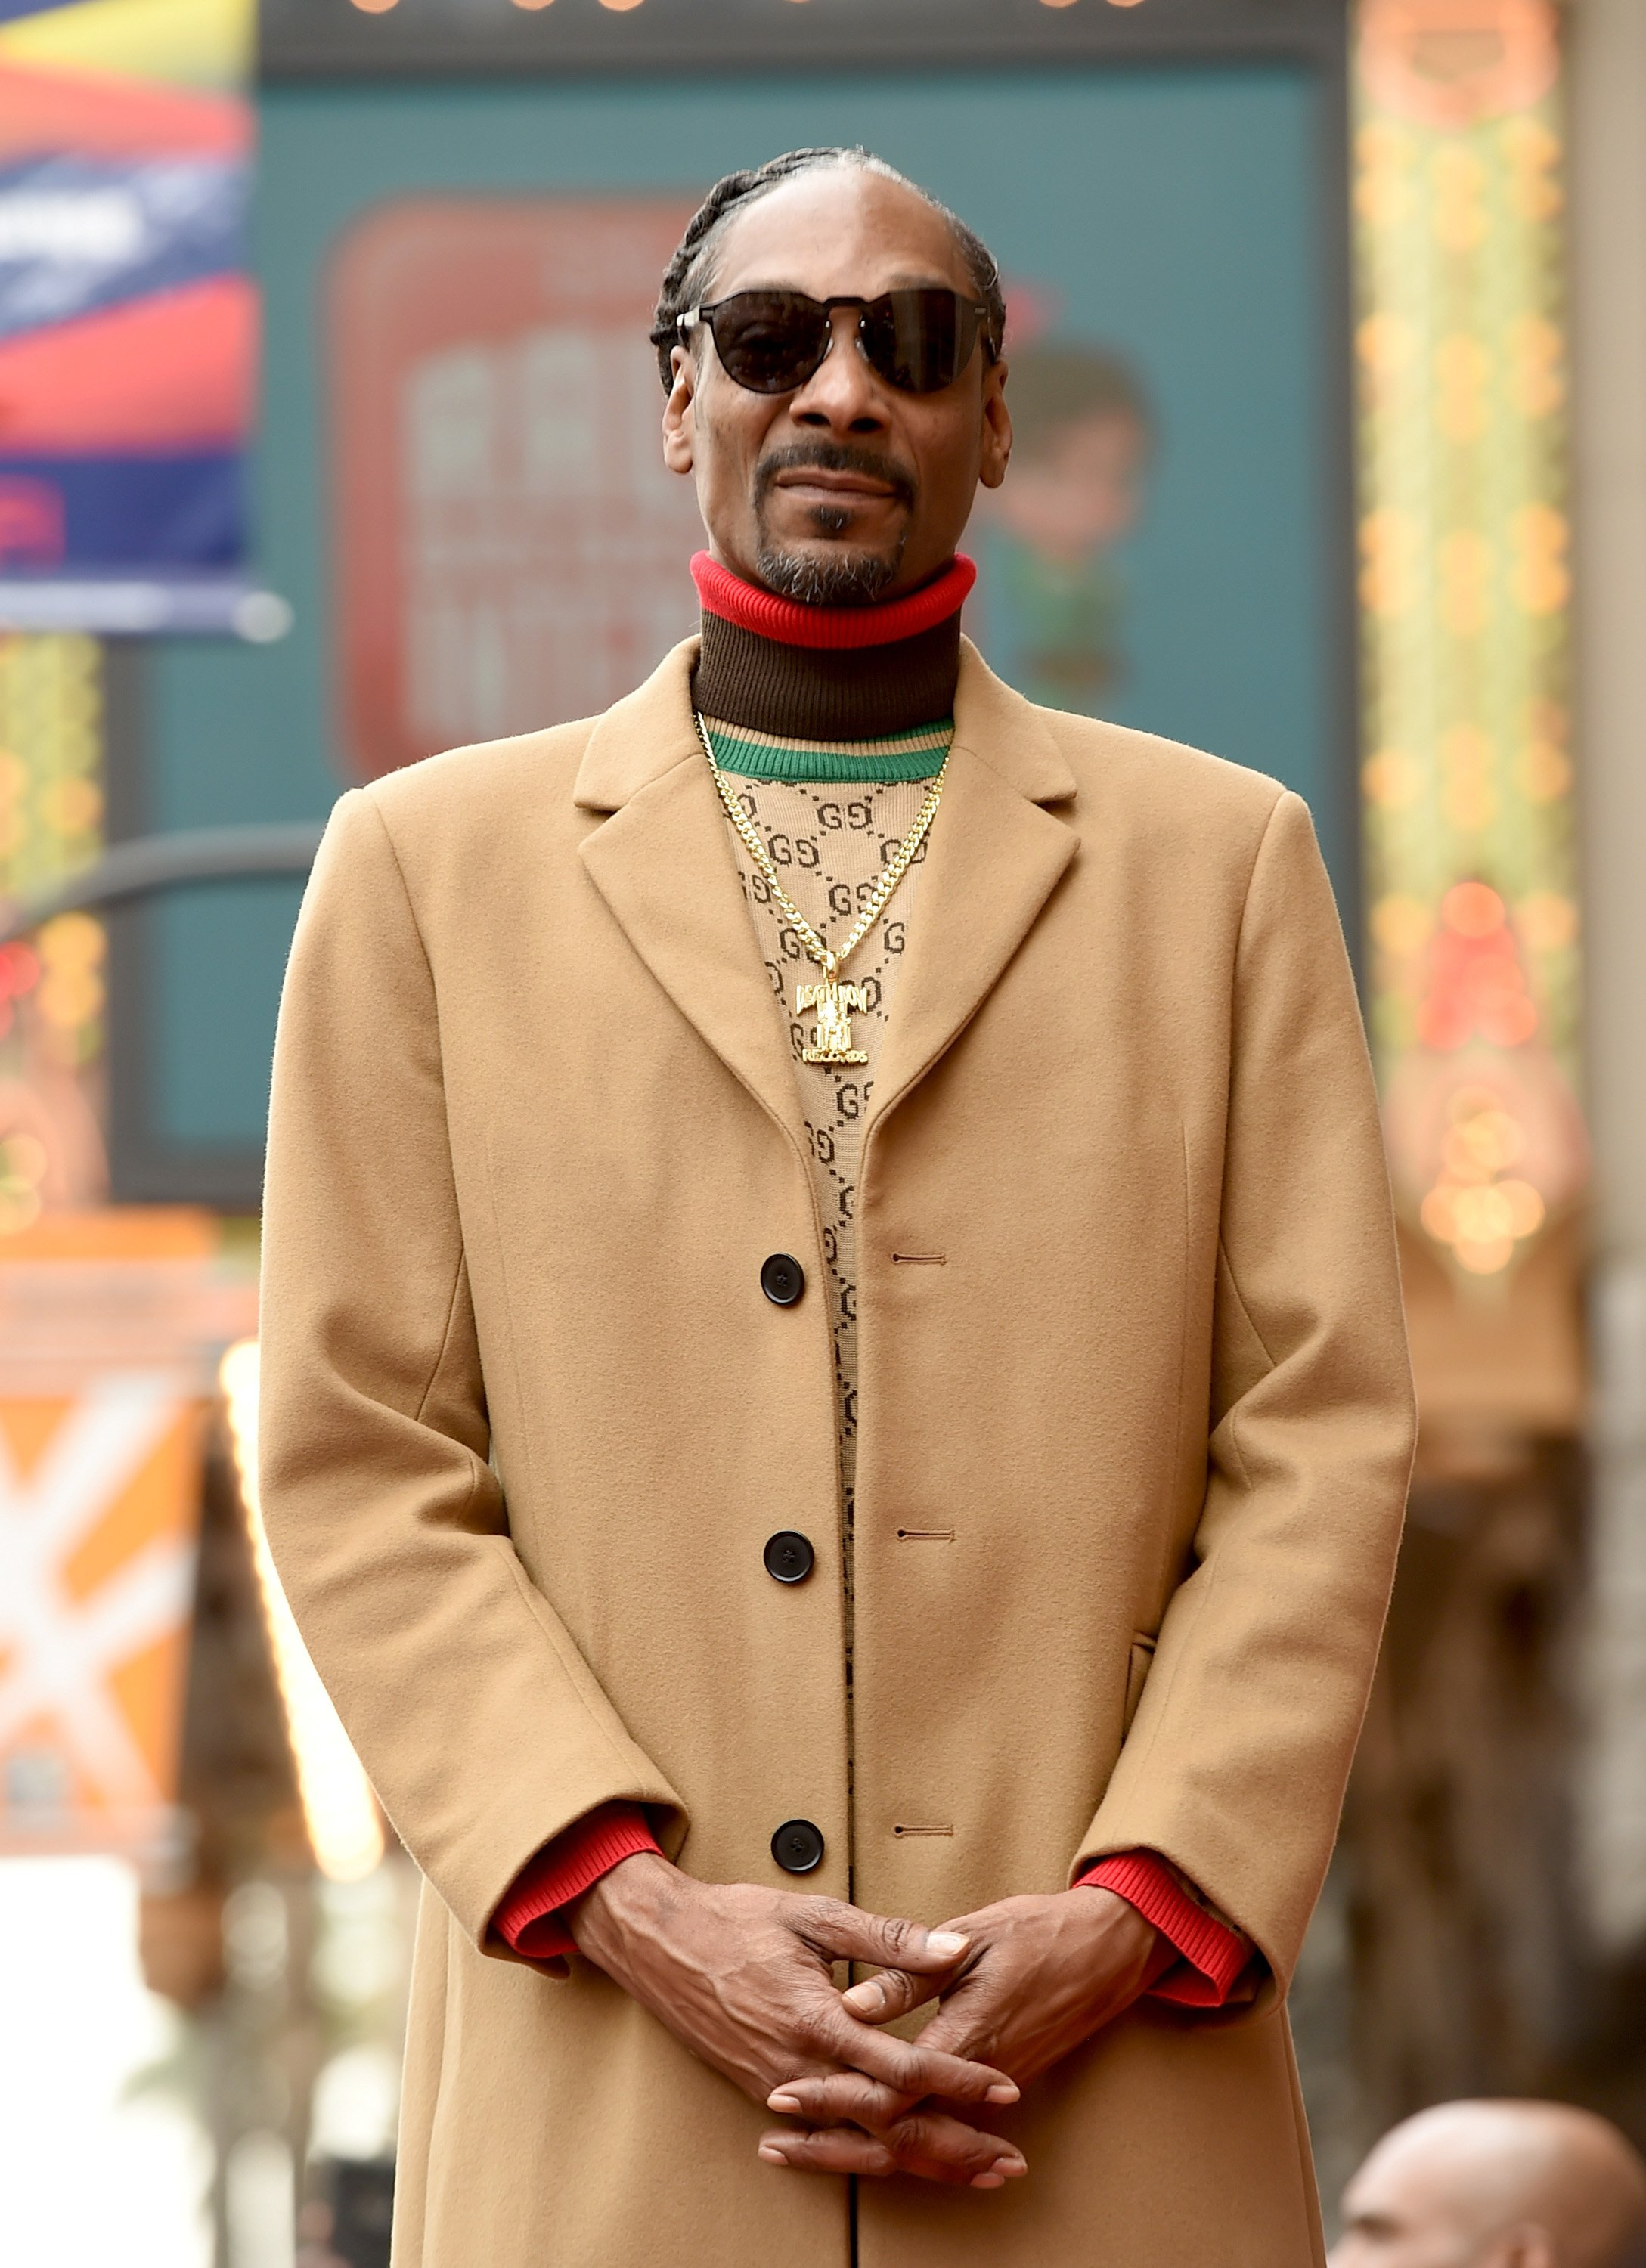 Snoop Dogg getting his star on The Hollywood Walk Of Fame in LA on Nov. 19, 2018. | Photo: Getty Images.